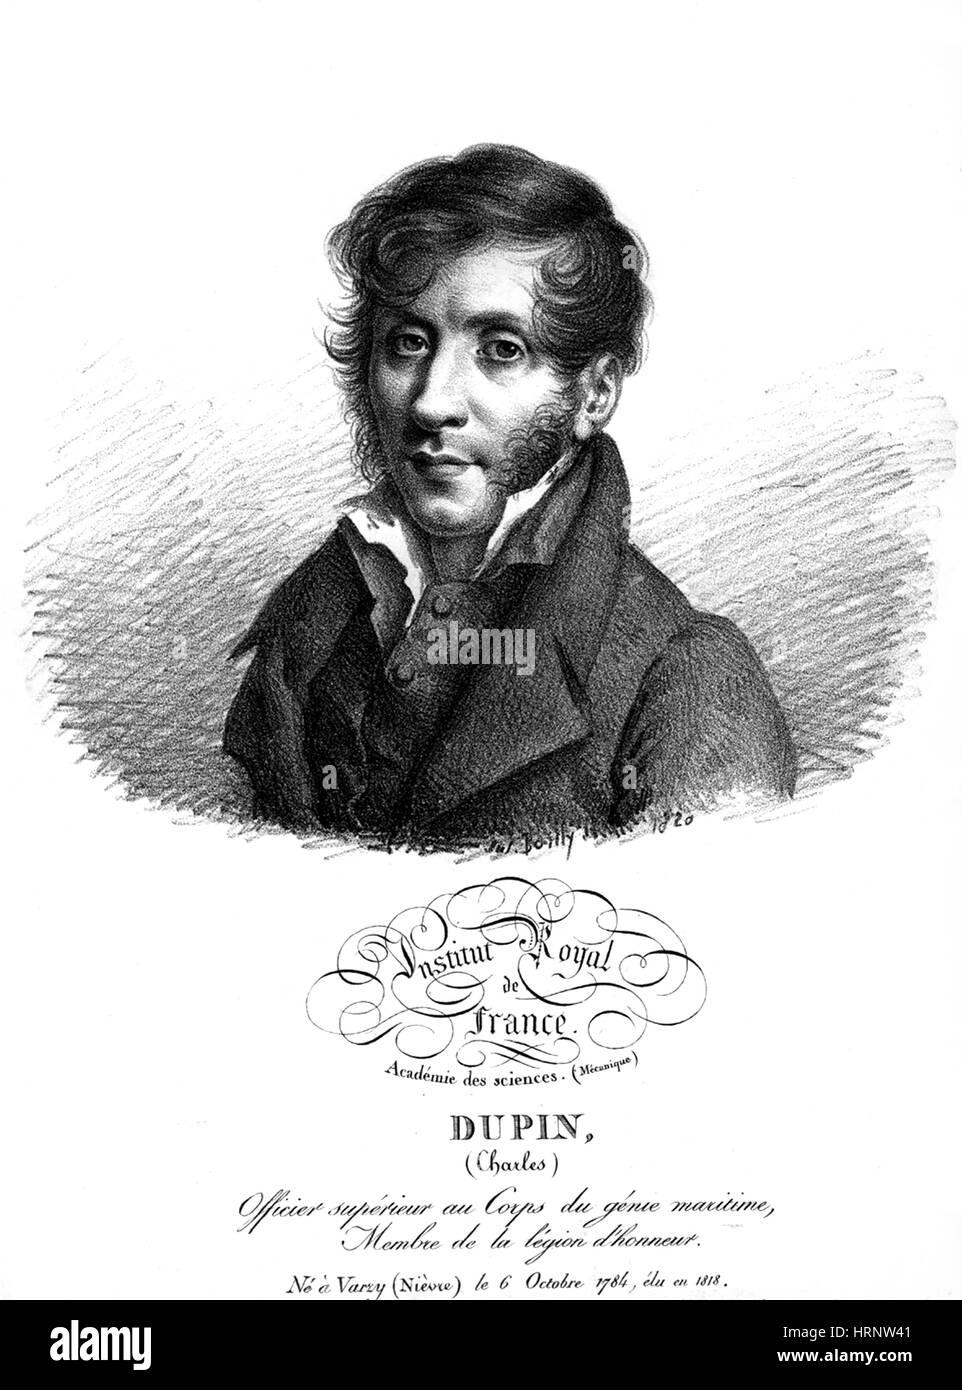 Pierre Dupin, French Mathematician - Stock Image